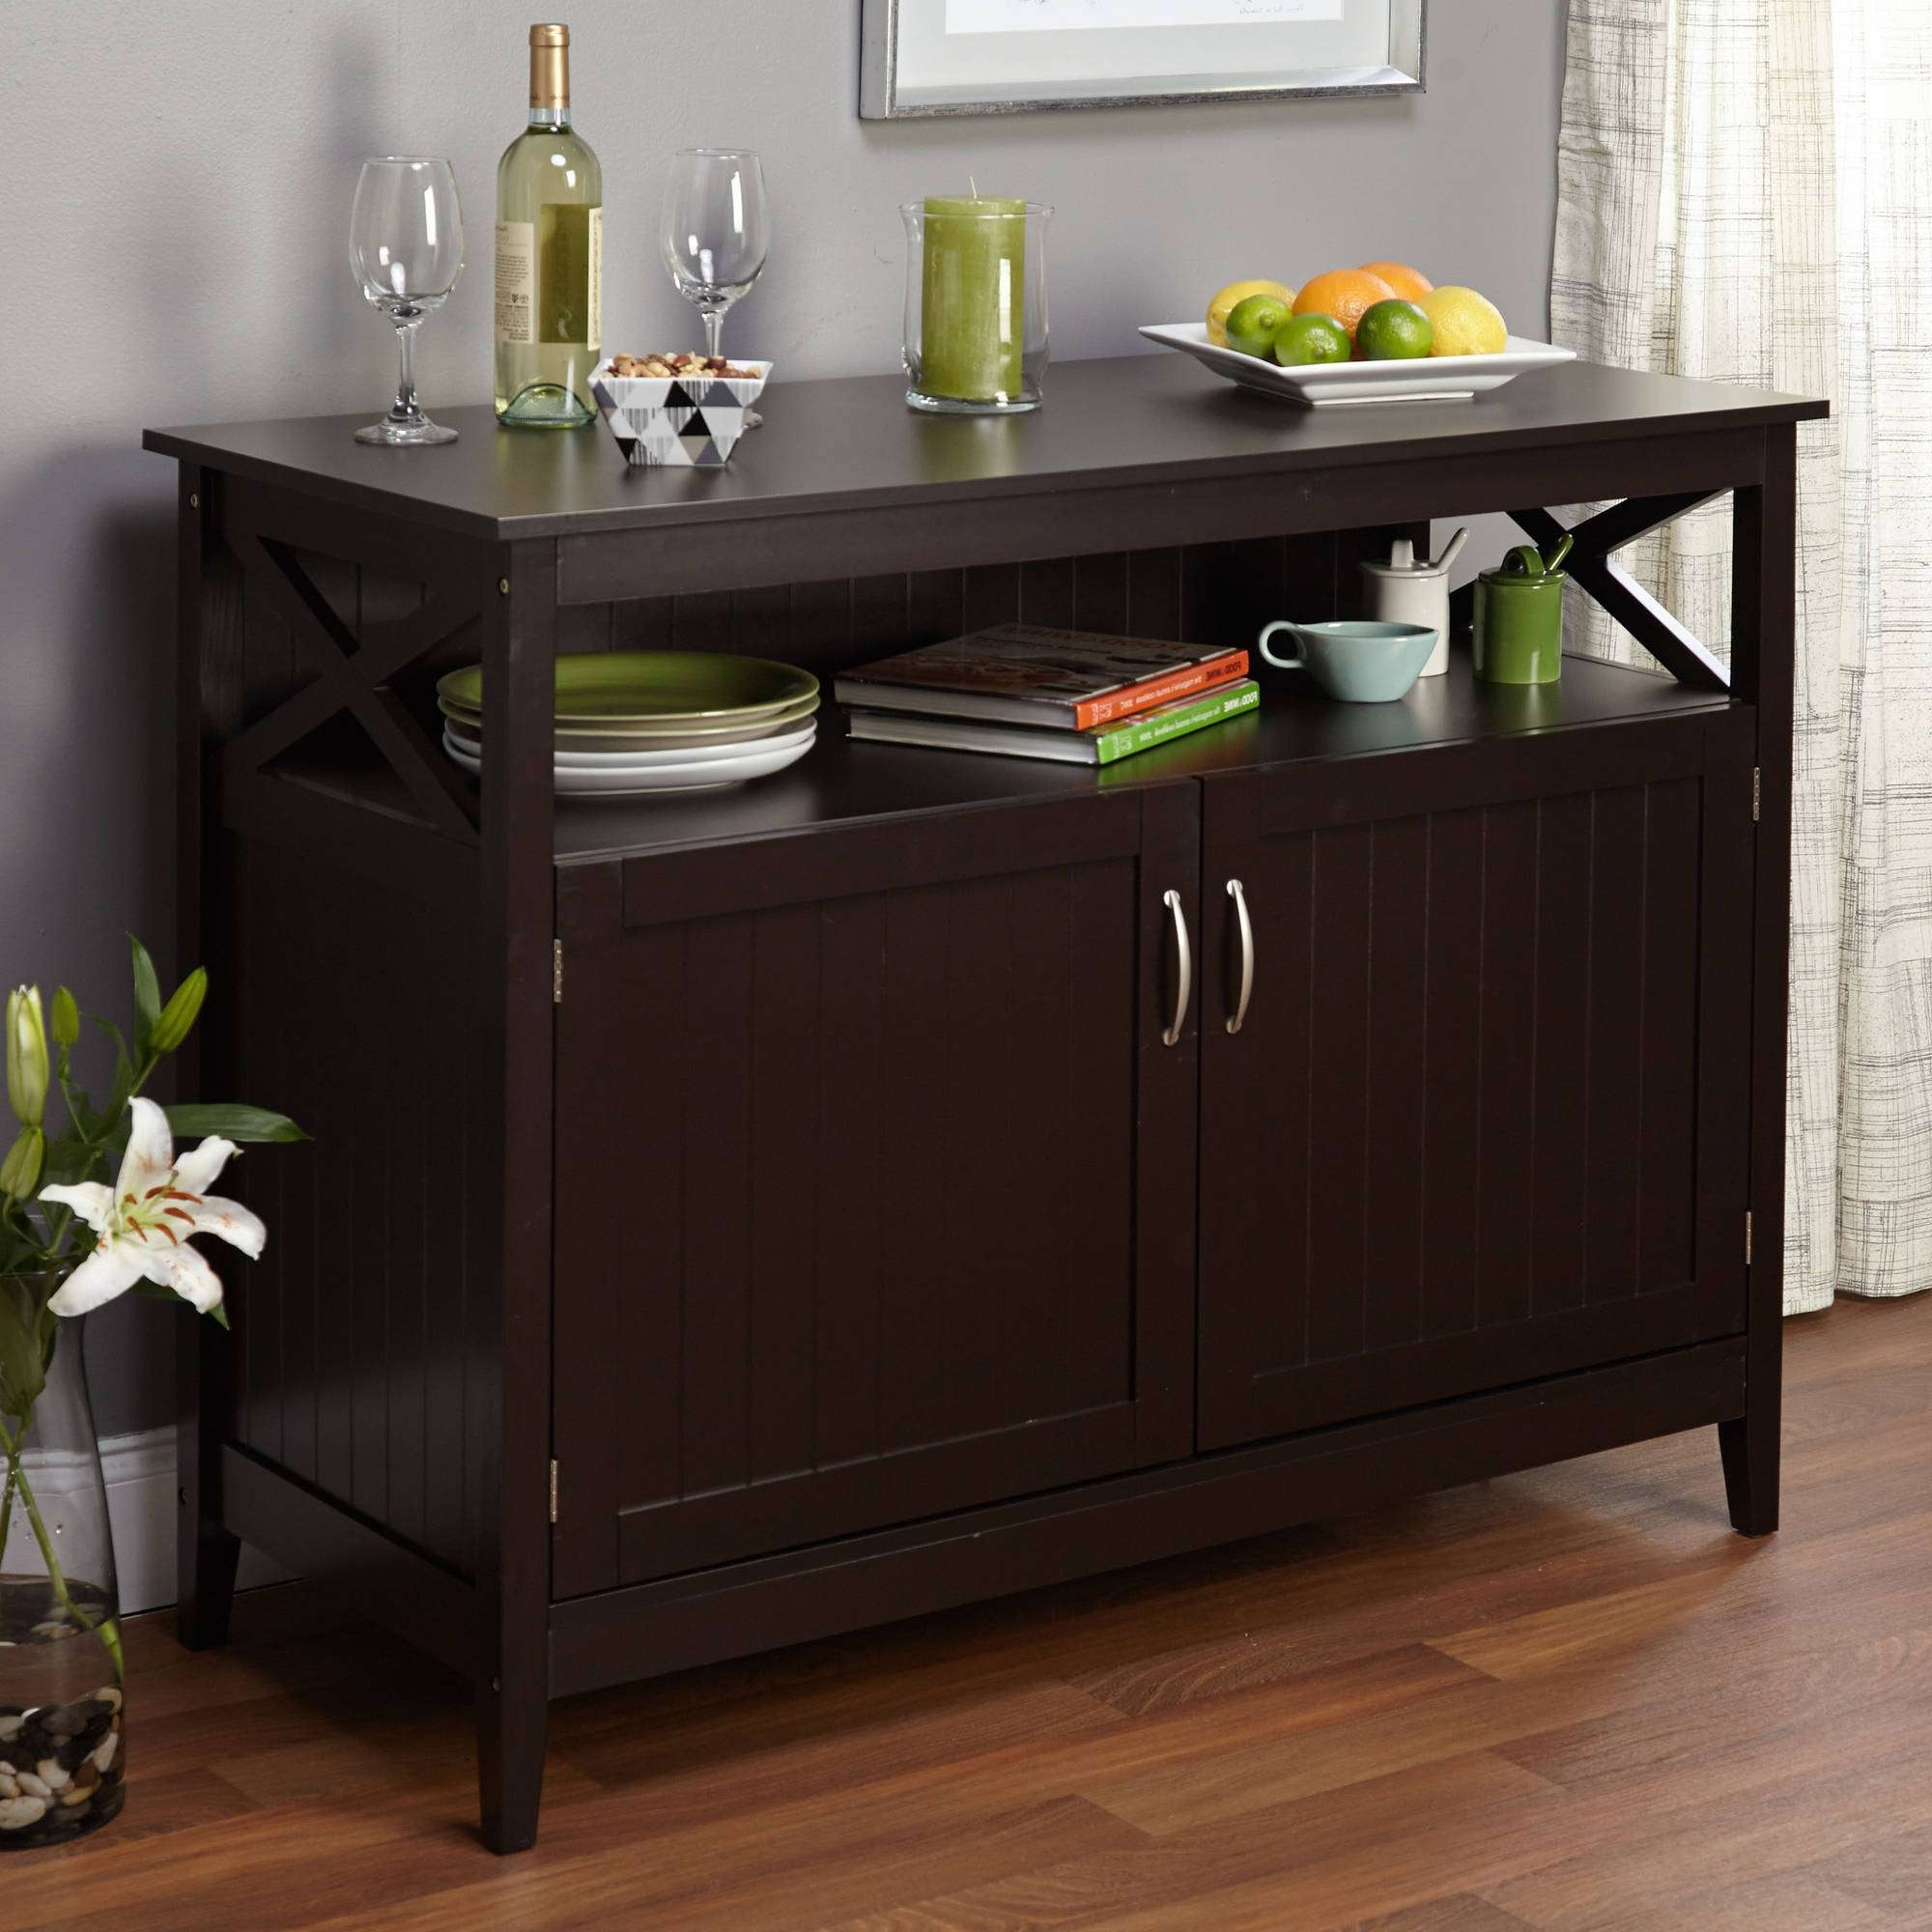 New Sideboard Buffet Server – Bjdgjy Inside Sideboards Buffet Tables (View 13 of 20)